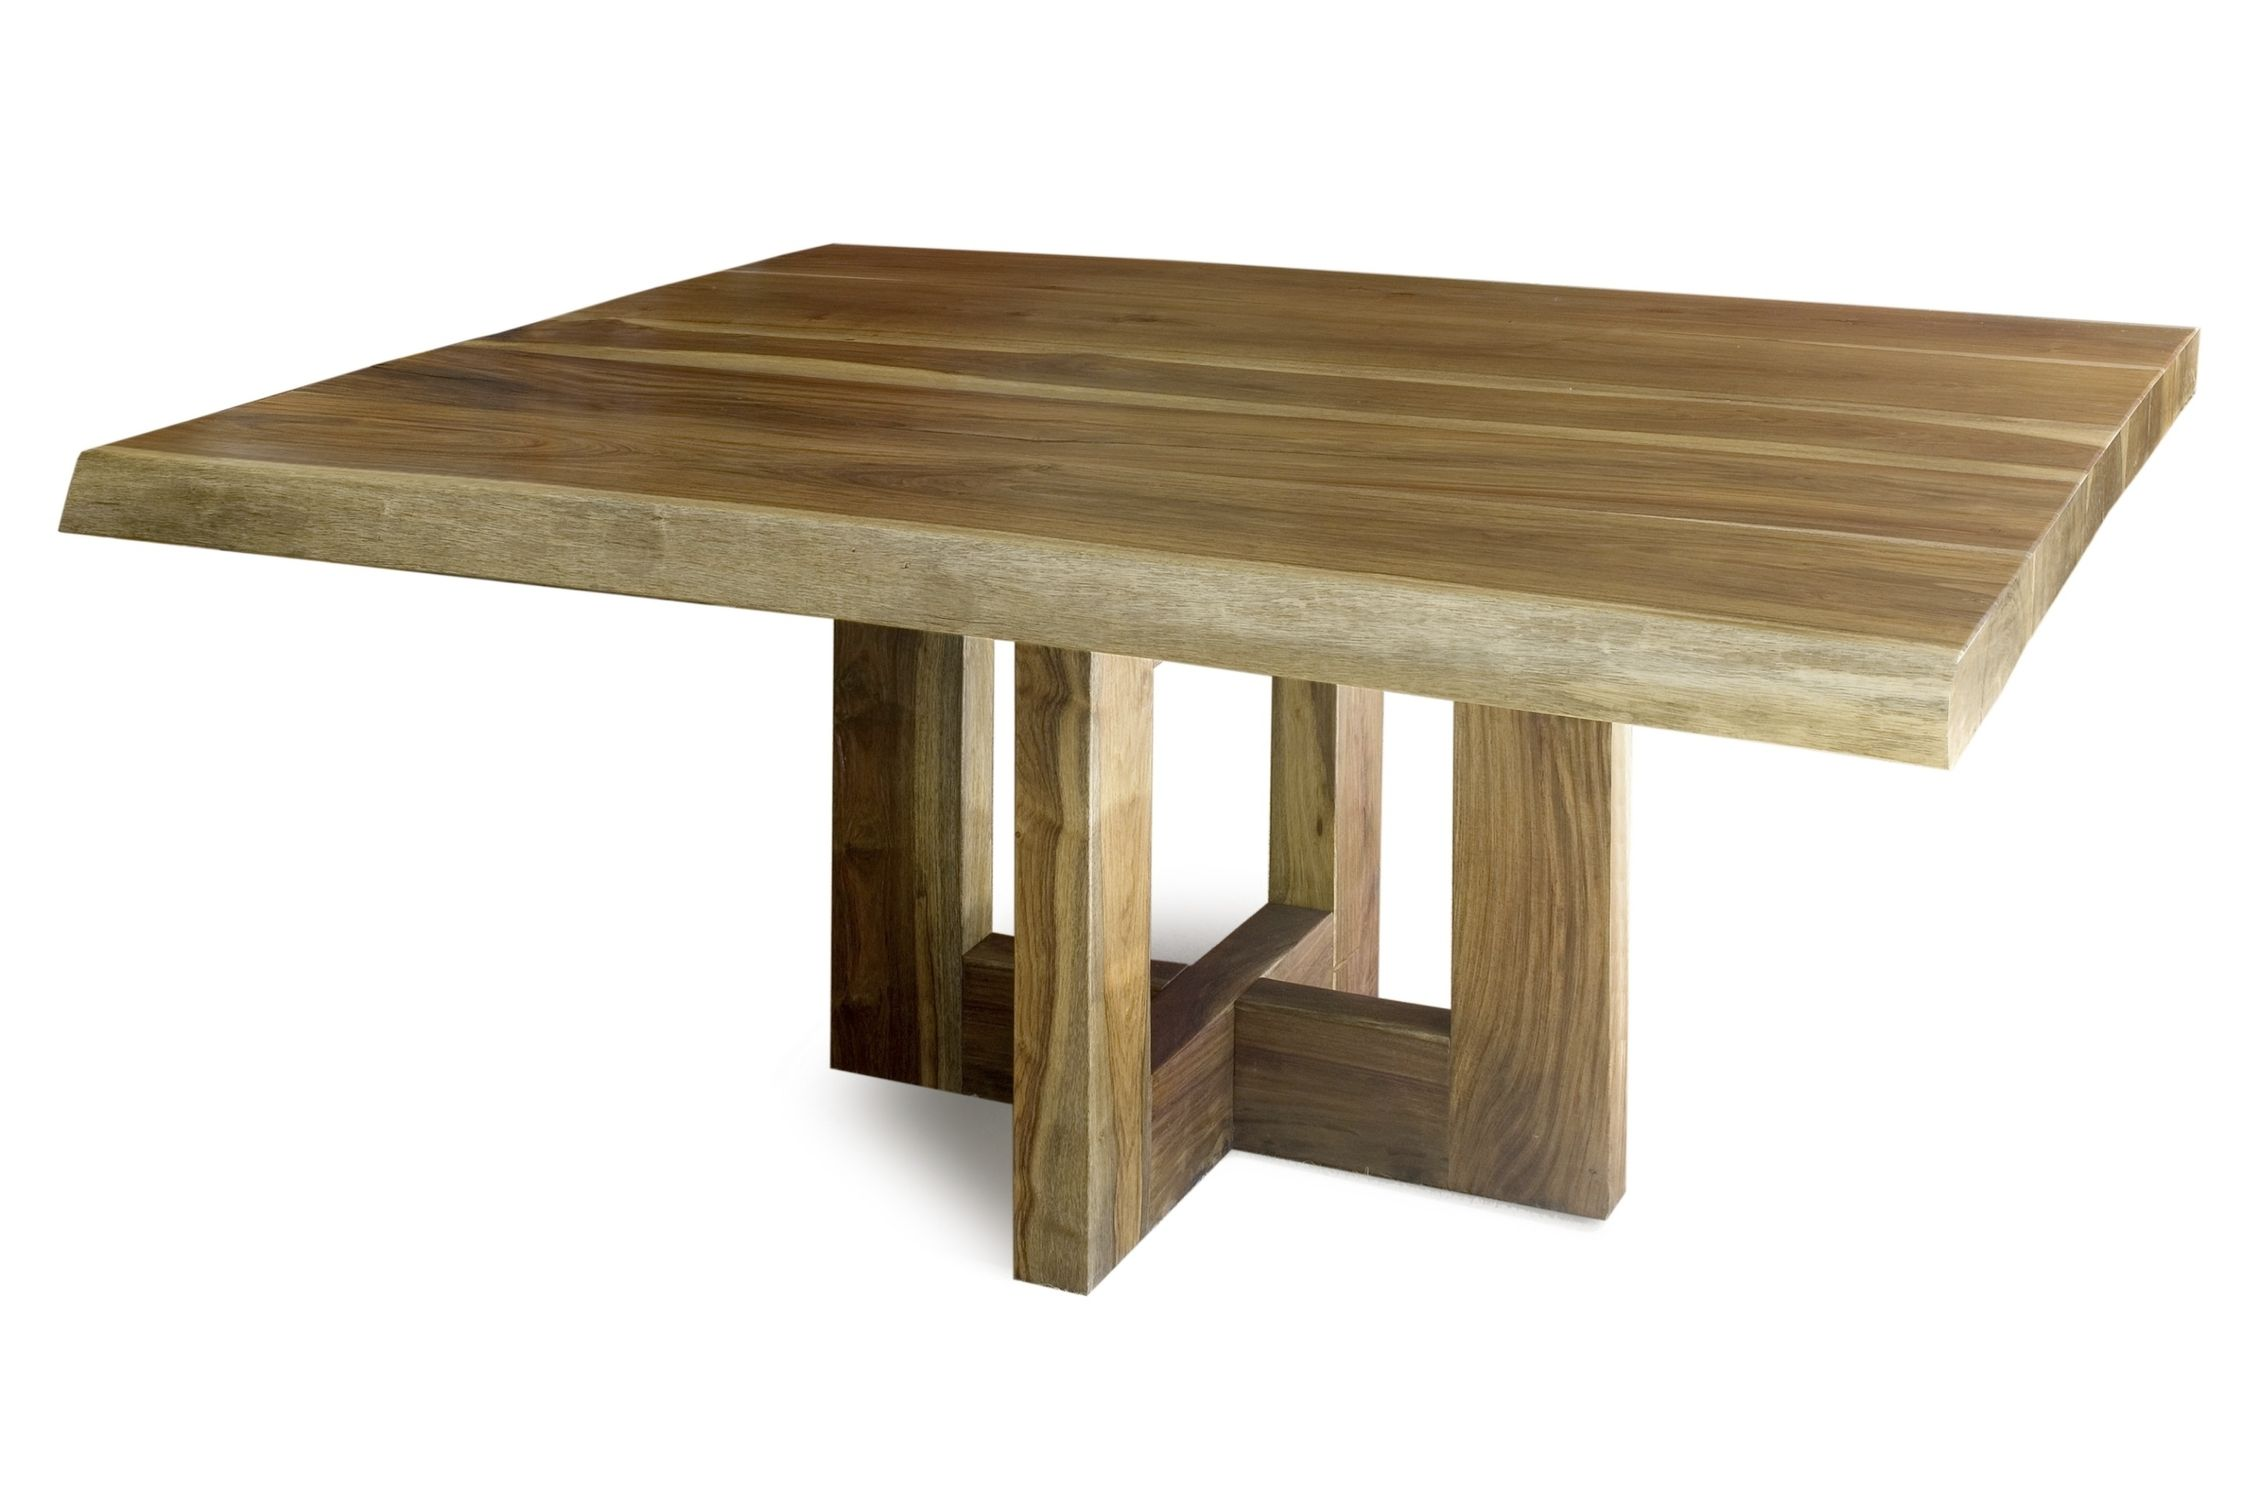 Beau Contemporary Table / Wooden / Rectangular / In Reclaimed Material    JACARANDA